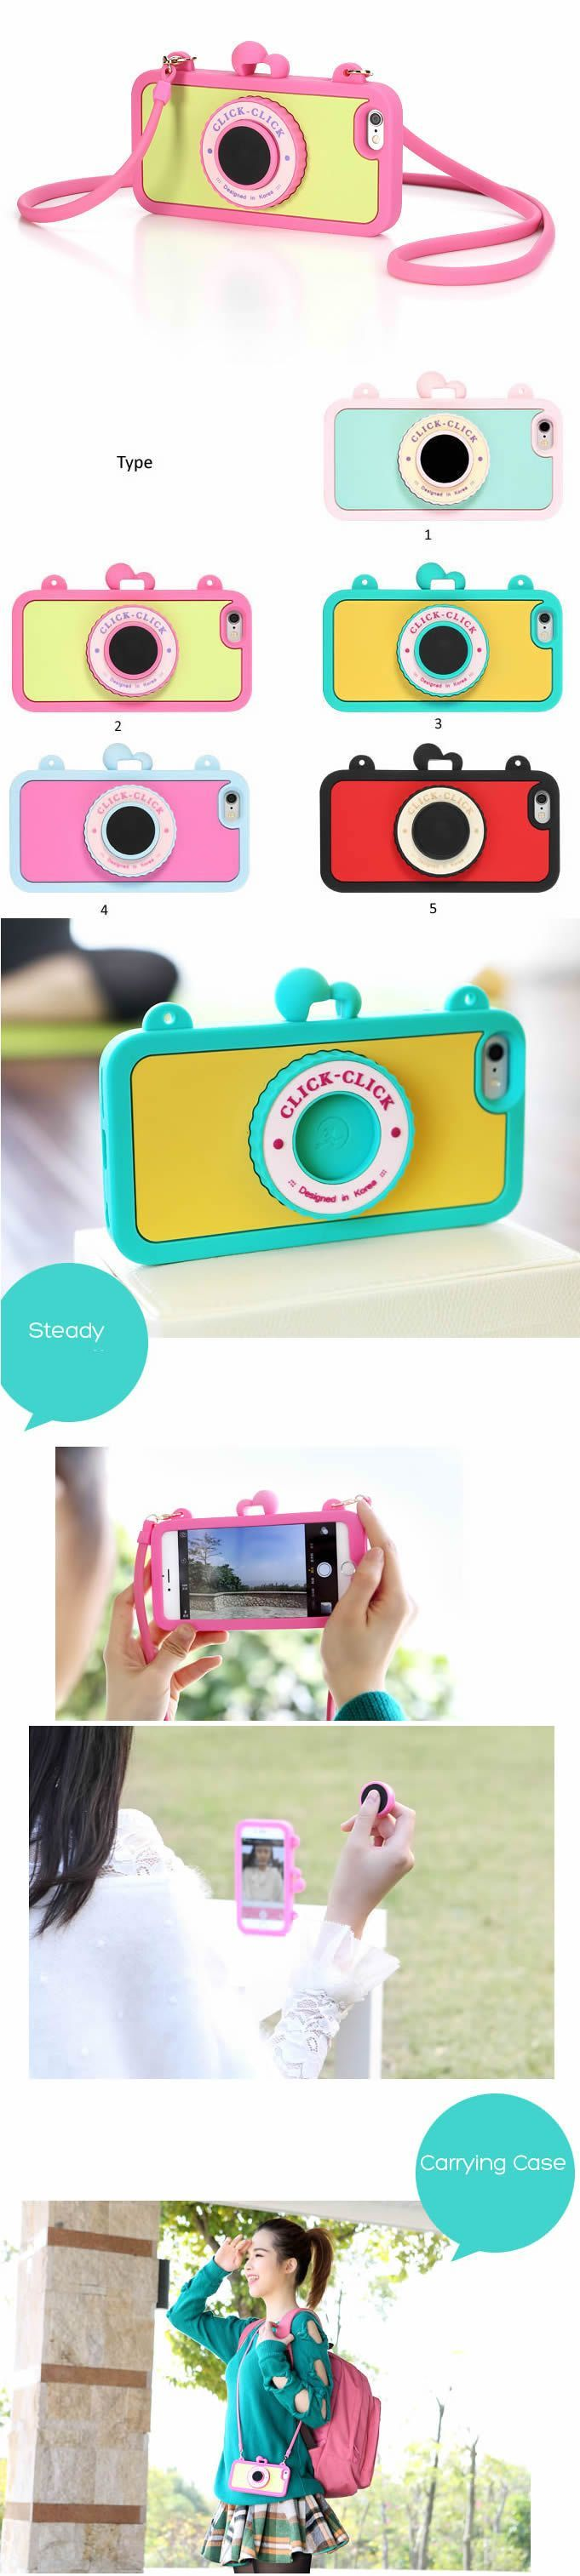 Camera Soft Silicone Case For iPhone 6/plus - Built in Wireless Camera Shutter Selfie Bluetooth Remote http://amzn.to/2rwWBKS